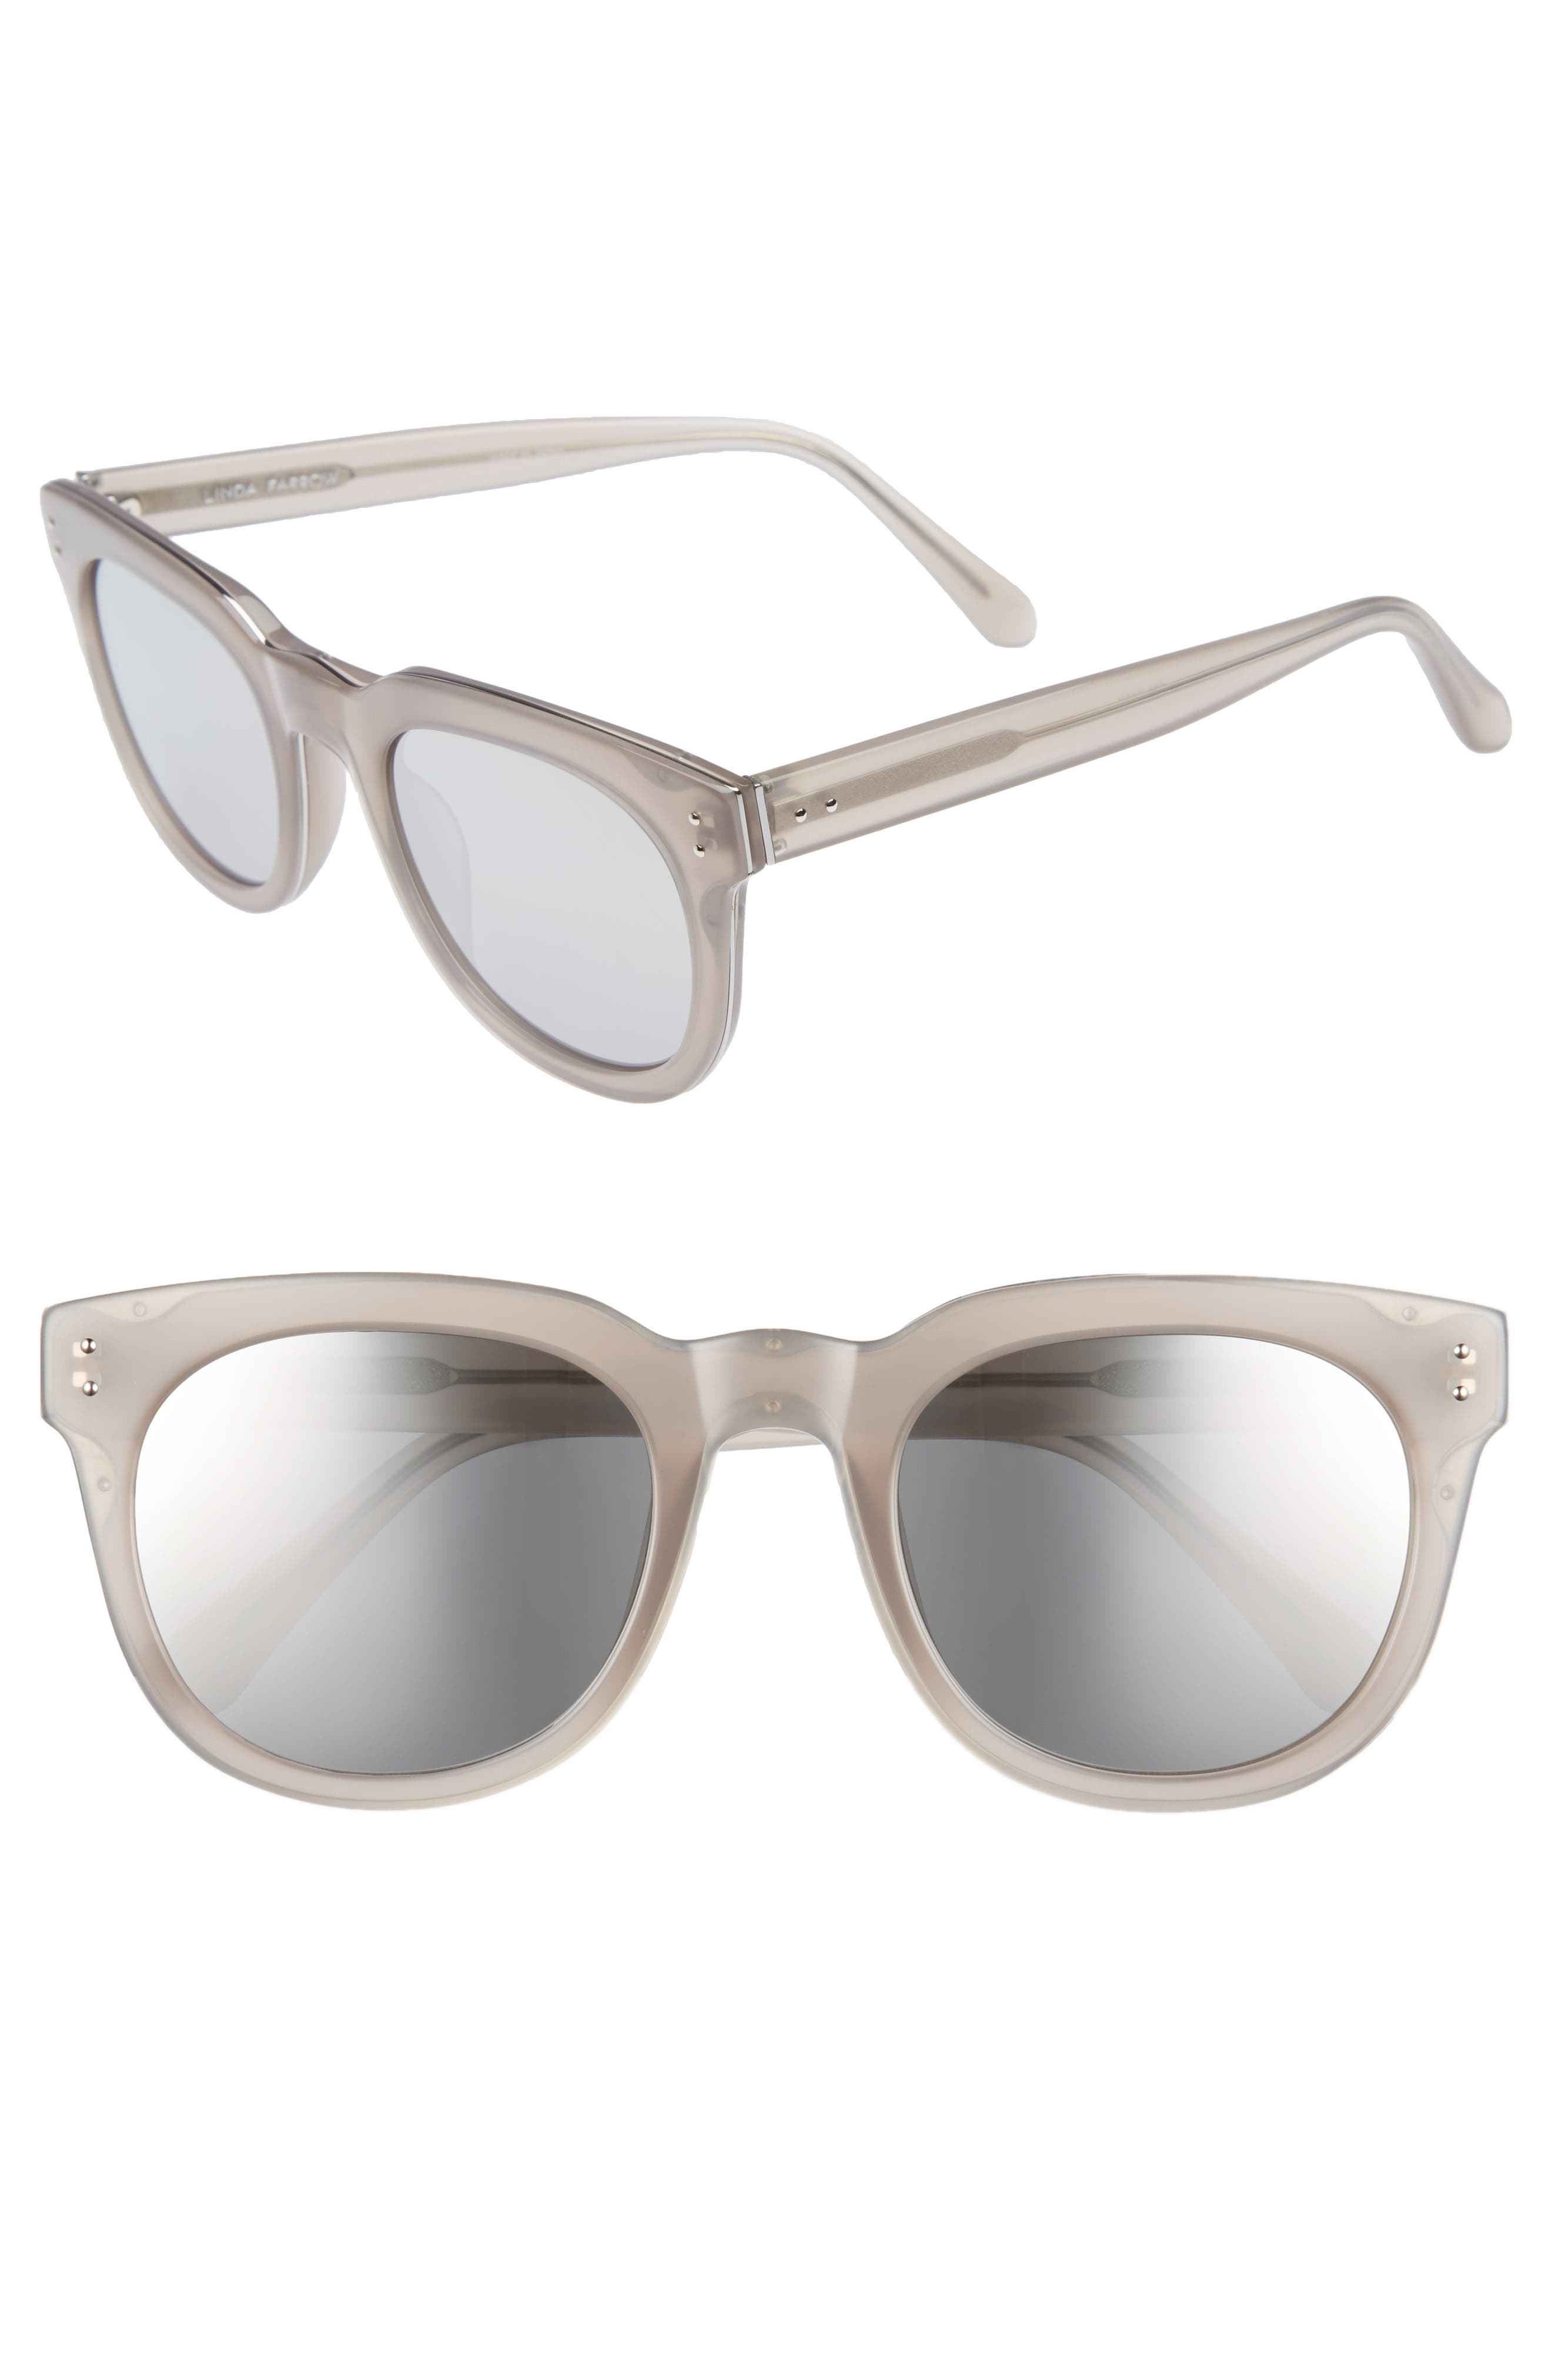 50mm D-Frame Mirrored Sunglasses,                             Main thumbnail 1, color,                             020